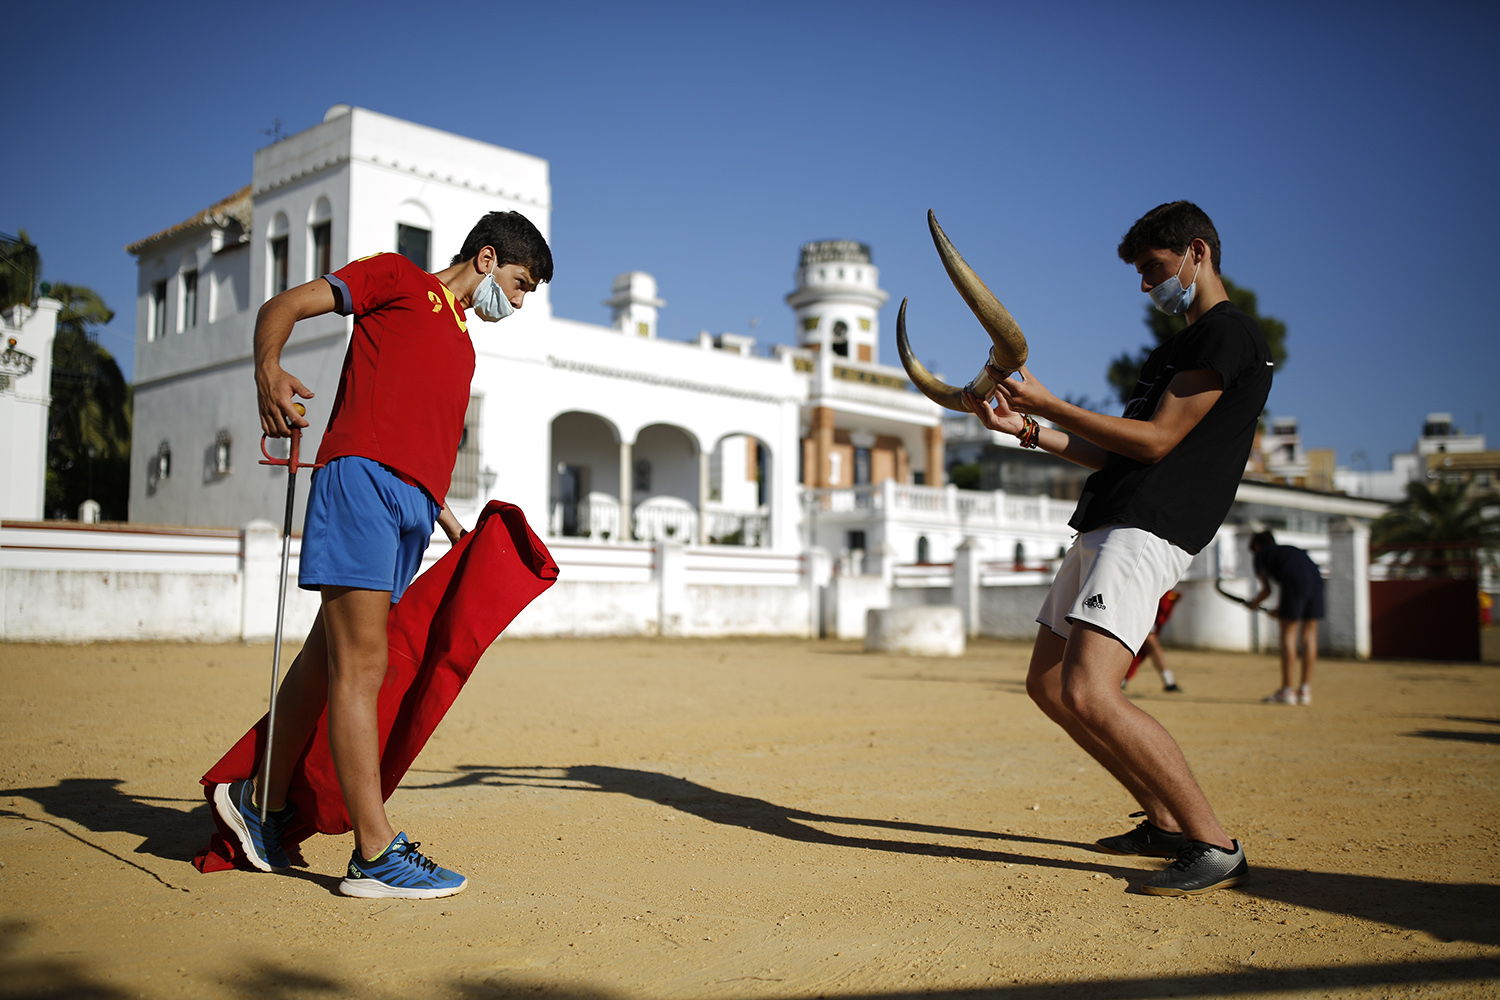 Bullfighting apprentices practice at a school in Seville, Spain, on June 16. Marcelo del Pozo/Getty Images